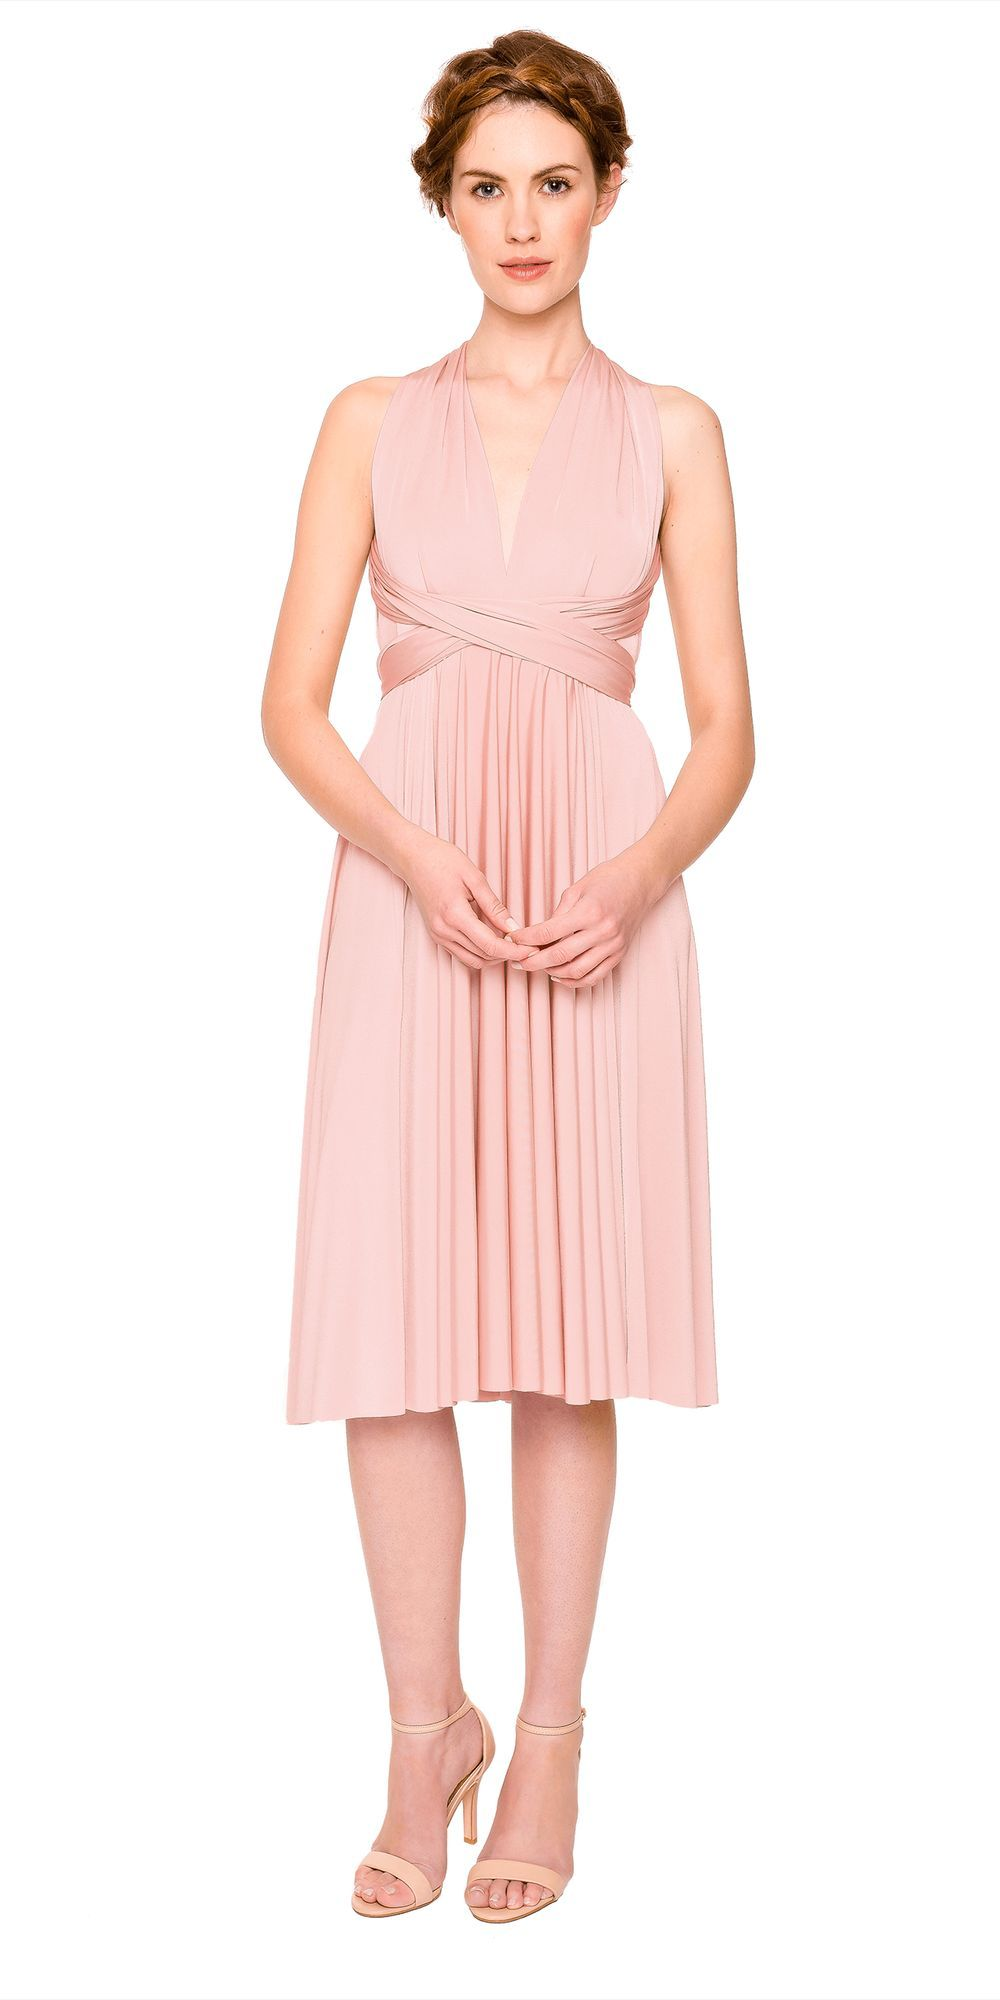 Classic Short Straight | Bridesmaid/Wedding * New Bridesmaid Dress ...